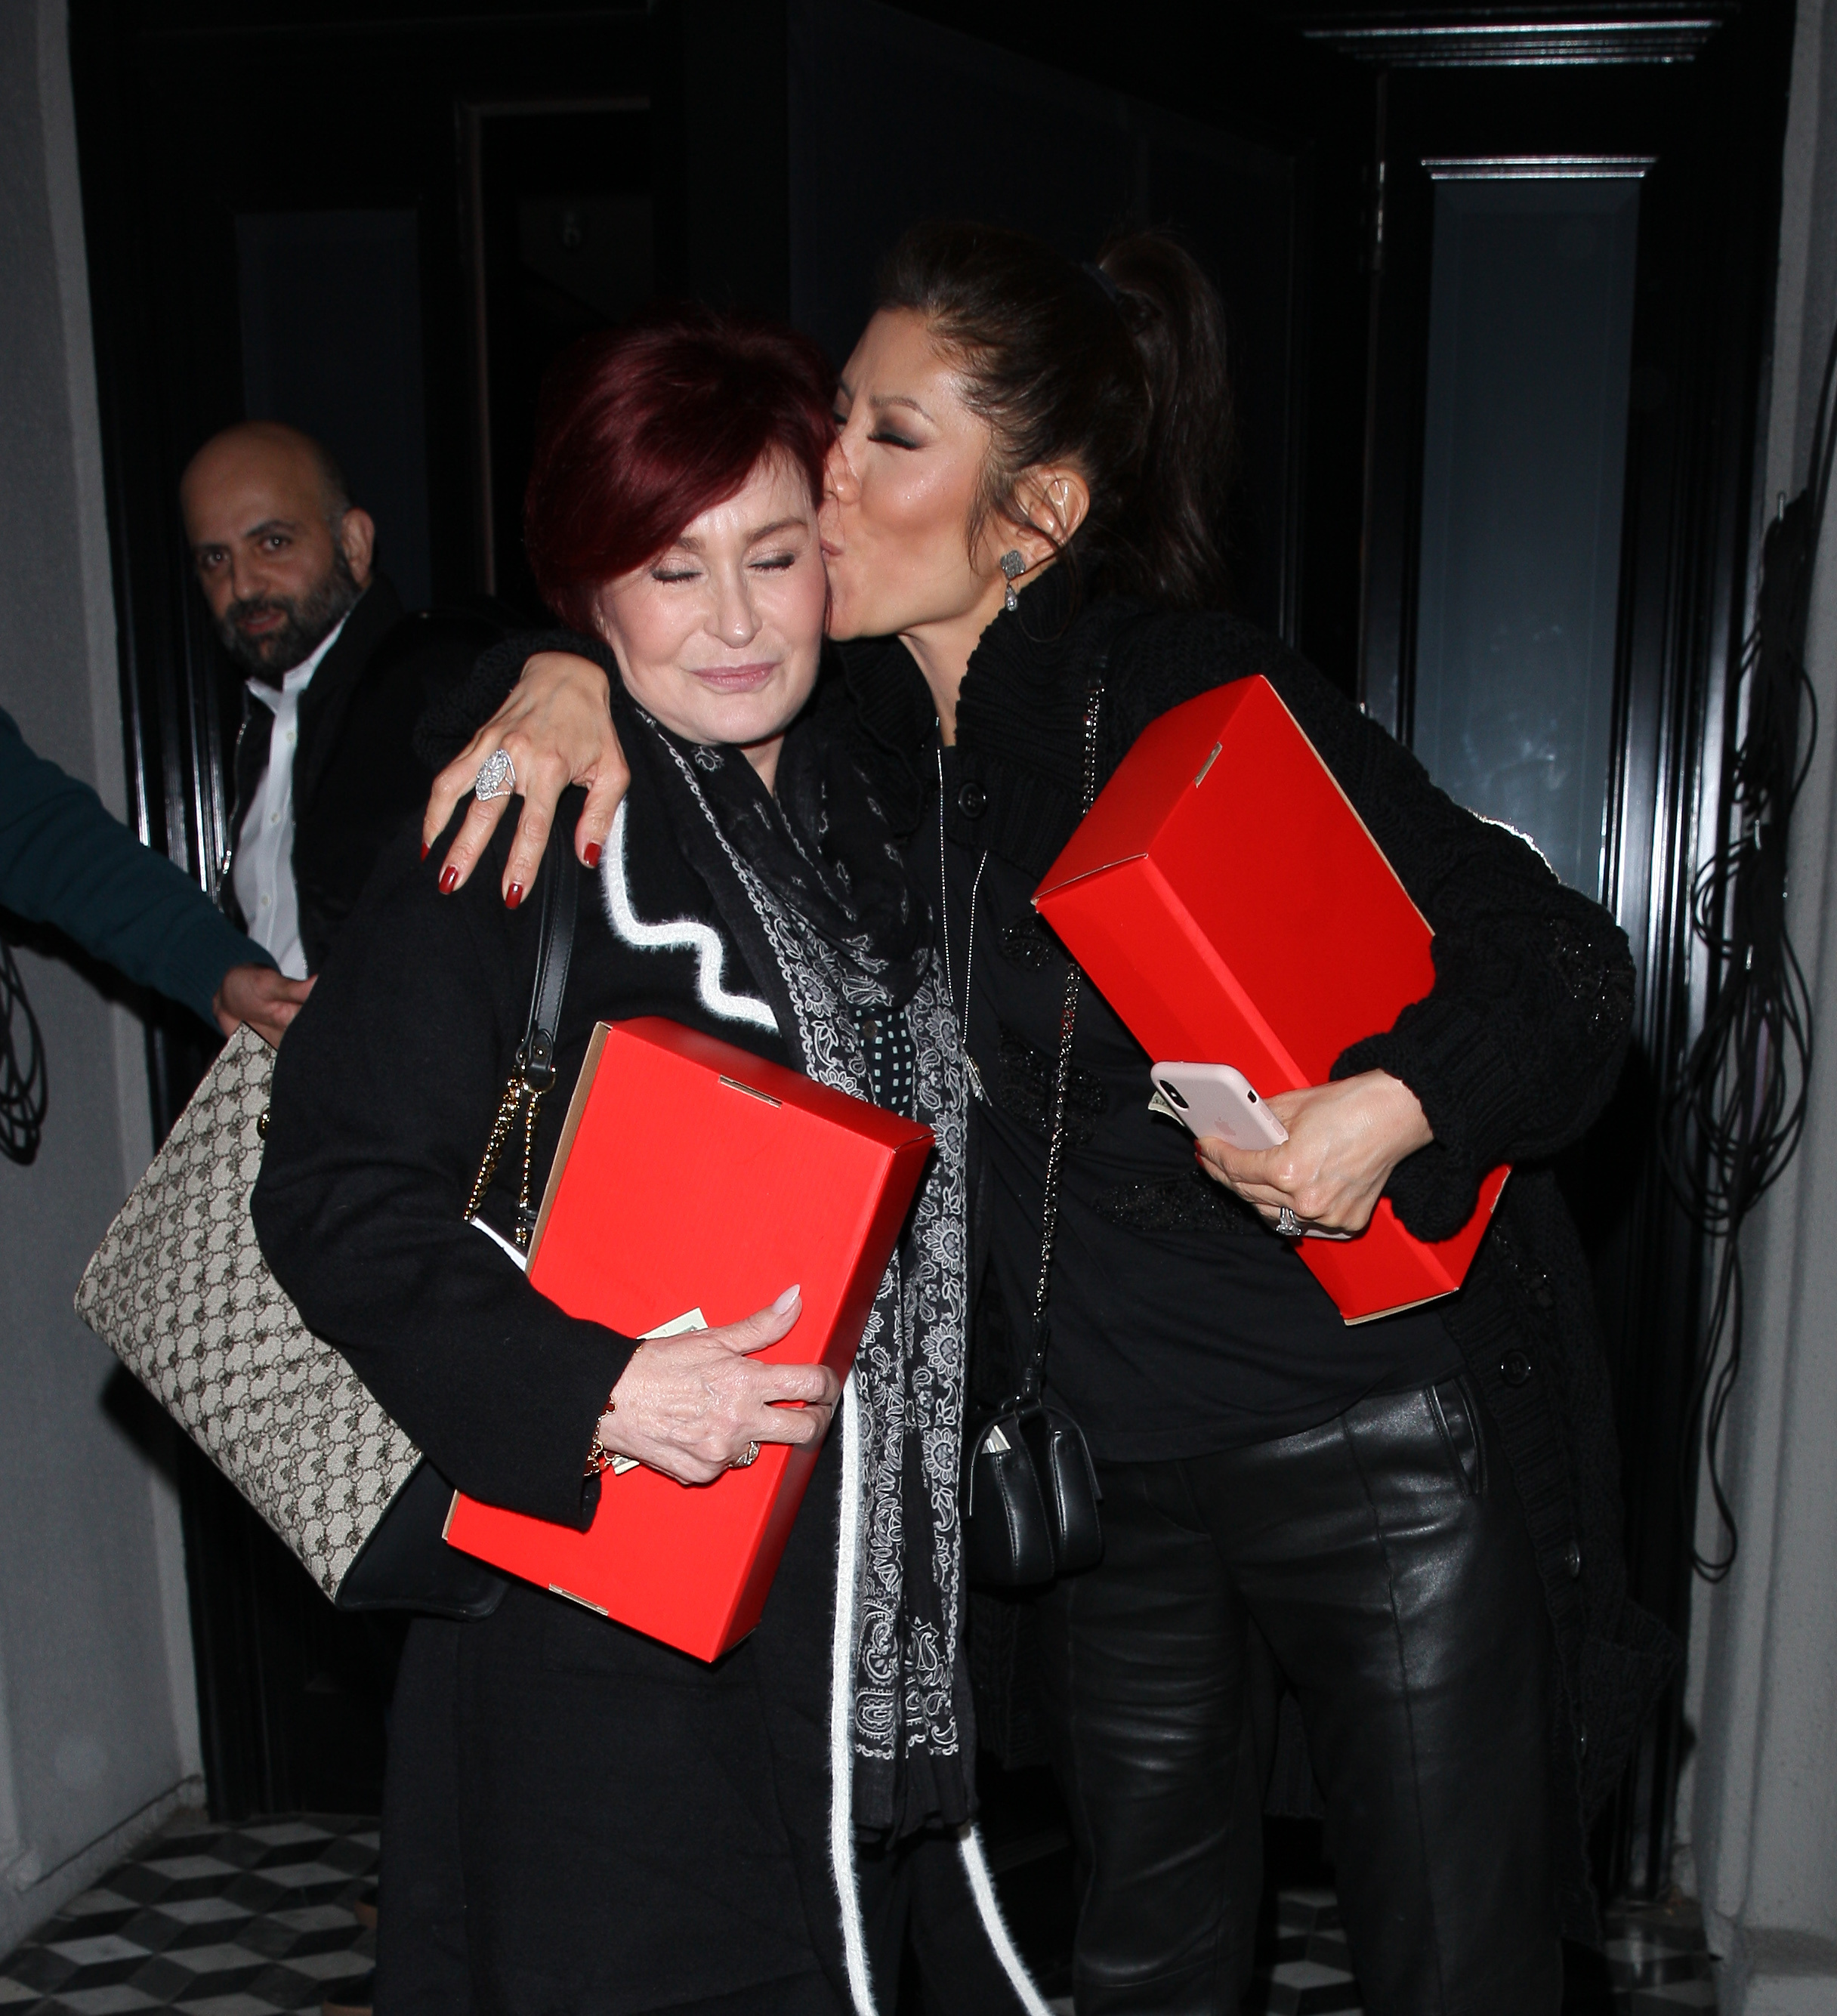 Sharon Osbourne gets a kiss on the cheek from Julie Chen as they dine at Craig's restaurant together in West Hollywood, CA on Jan. 30, 2018.